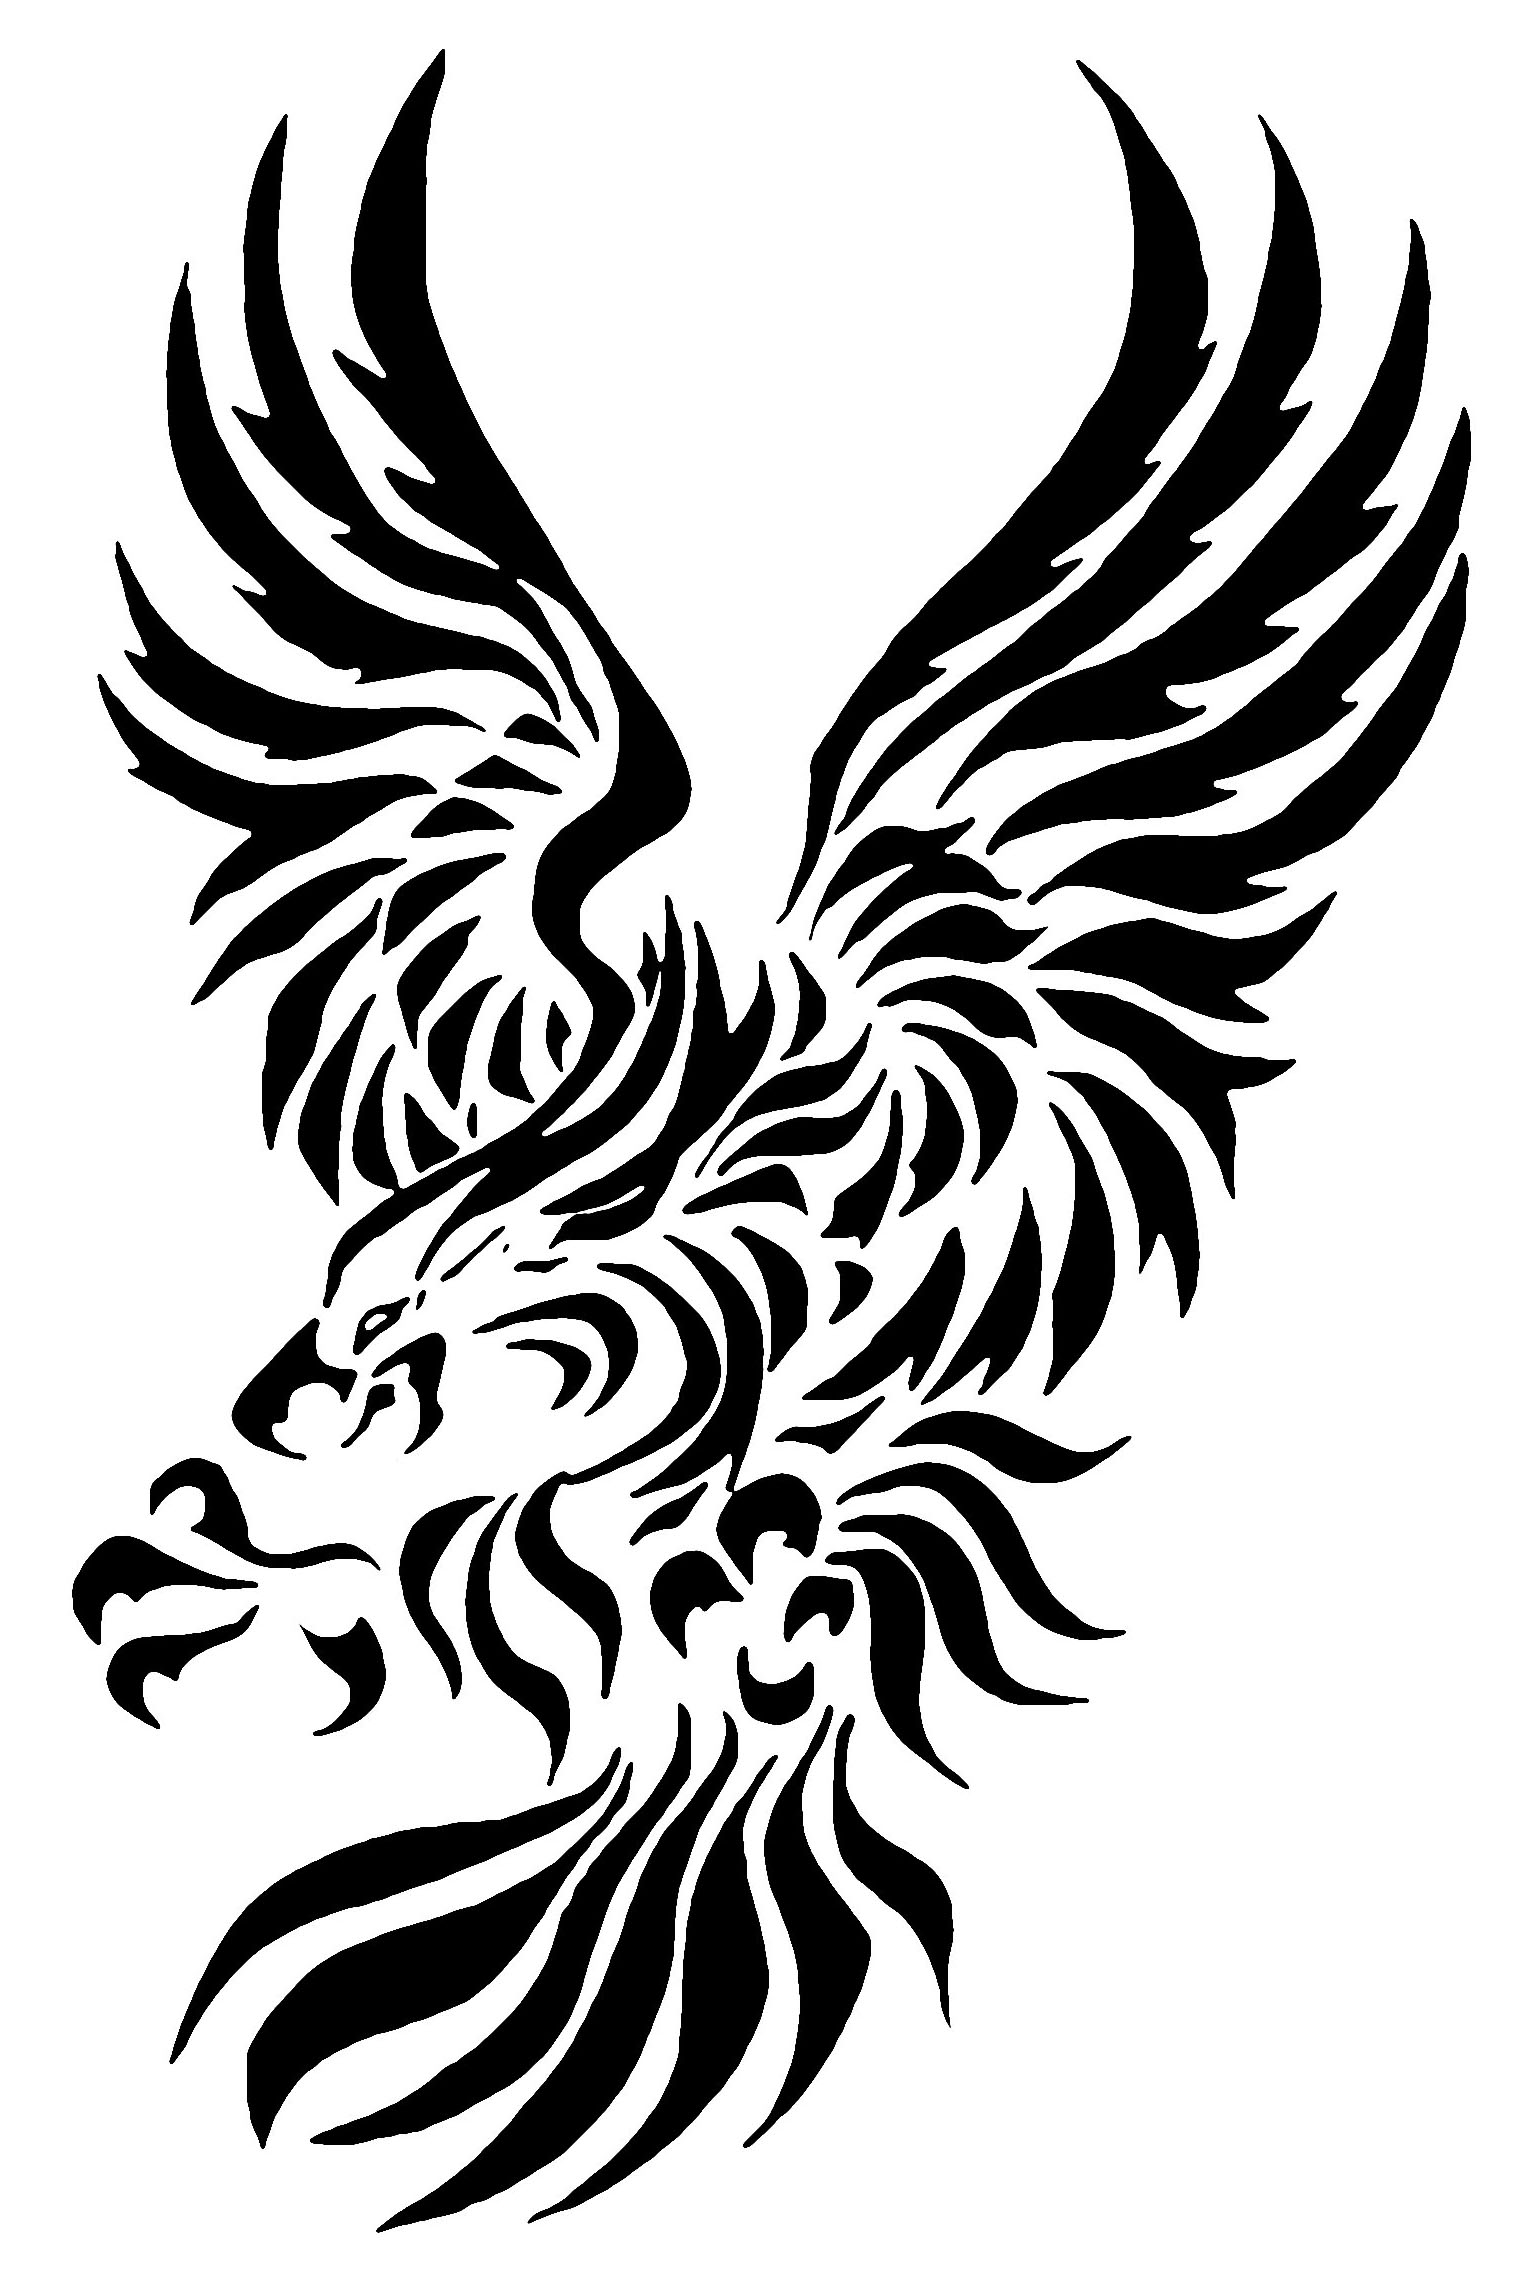 polish eagle tattoo clipart best. Black Bedroom Furniture Sets. Home Design Ideas